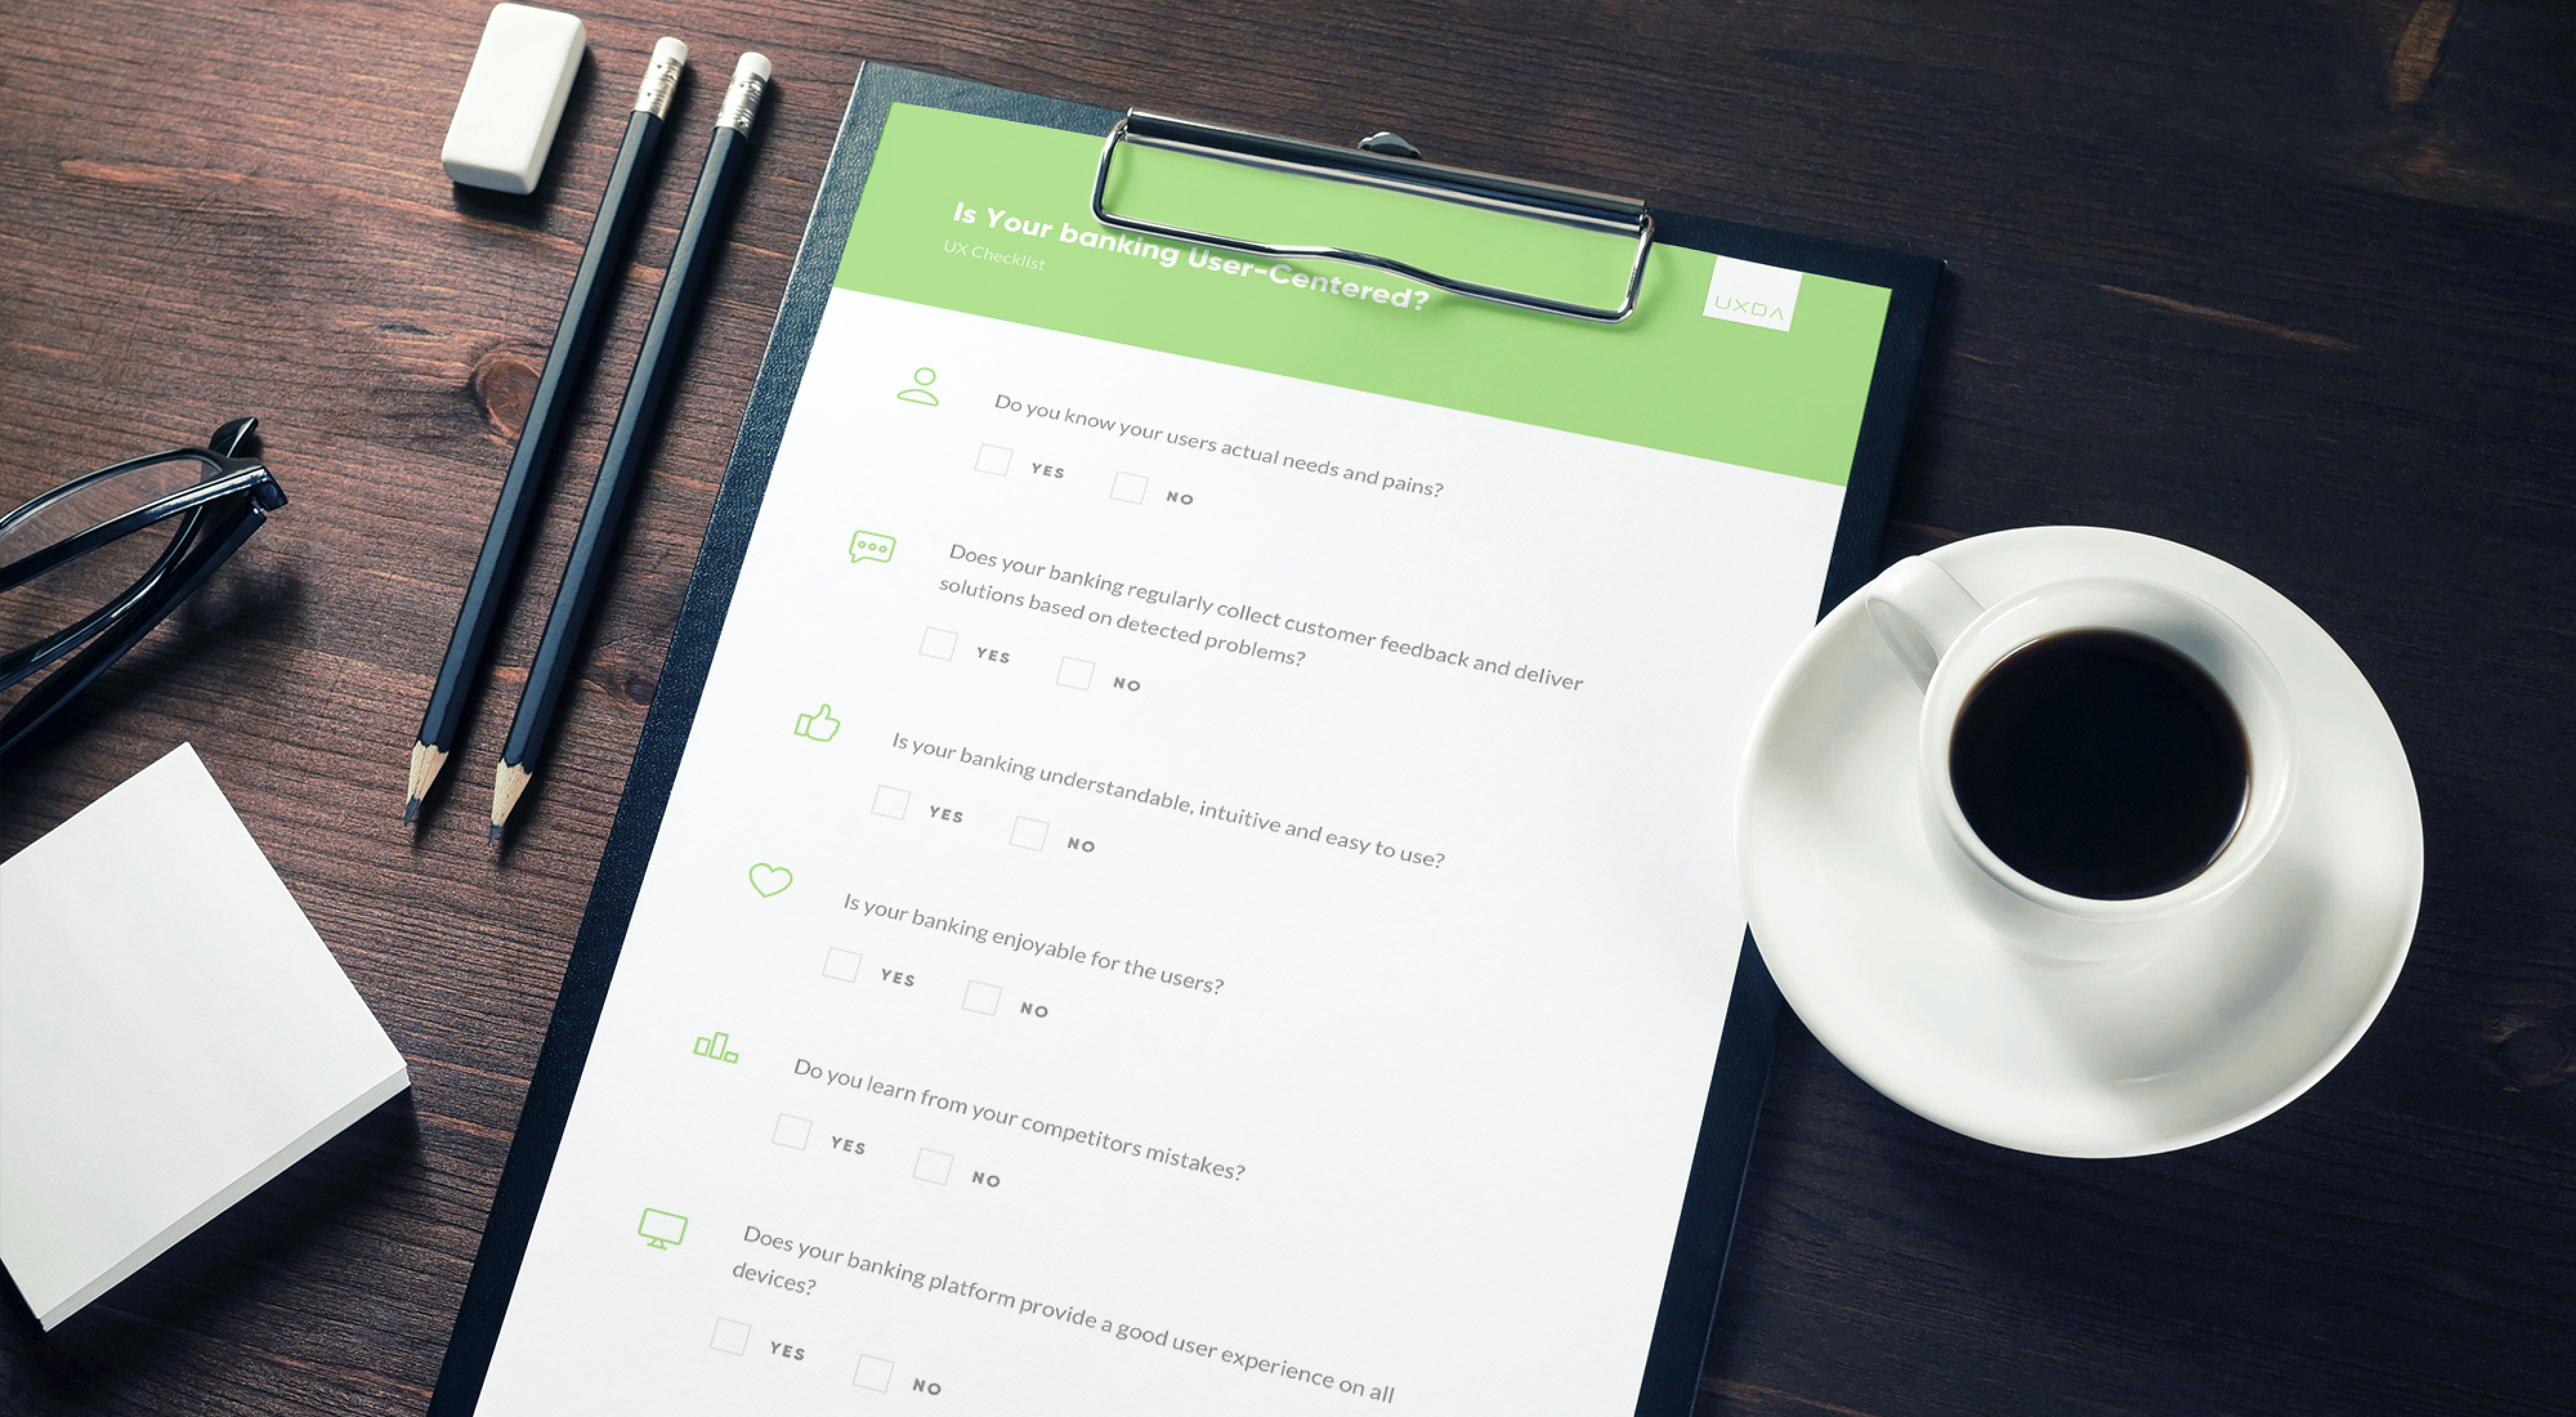 UX Checklist: Is Your Banking UX Design User-Centered?